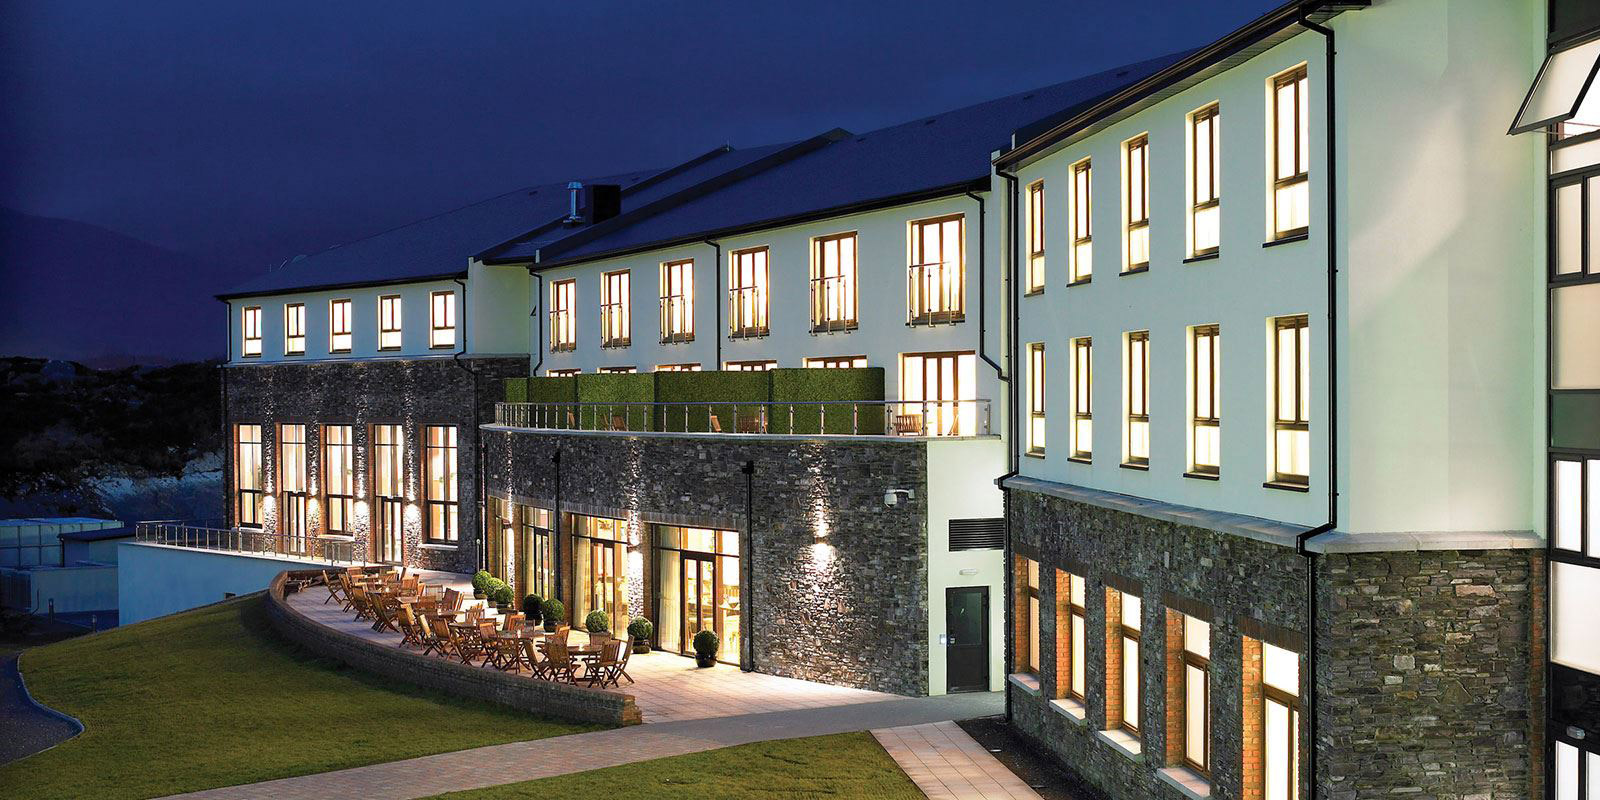 Sneem Hotel, Co. Kerry